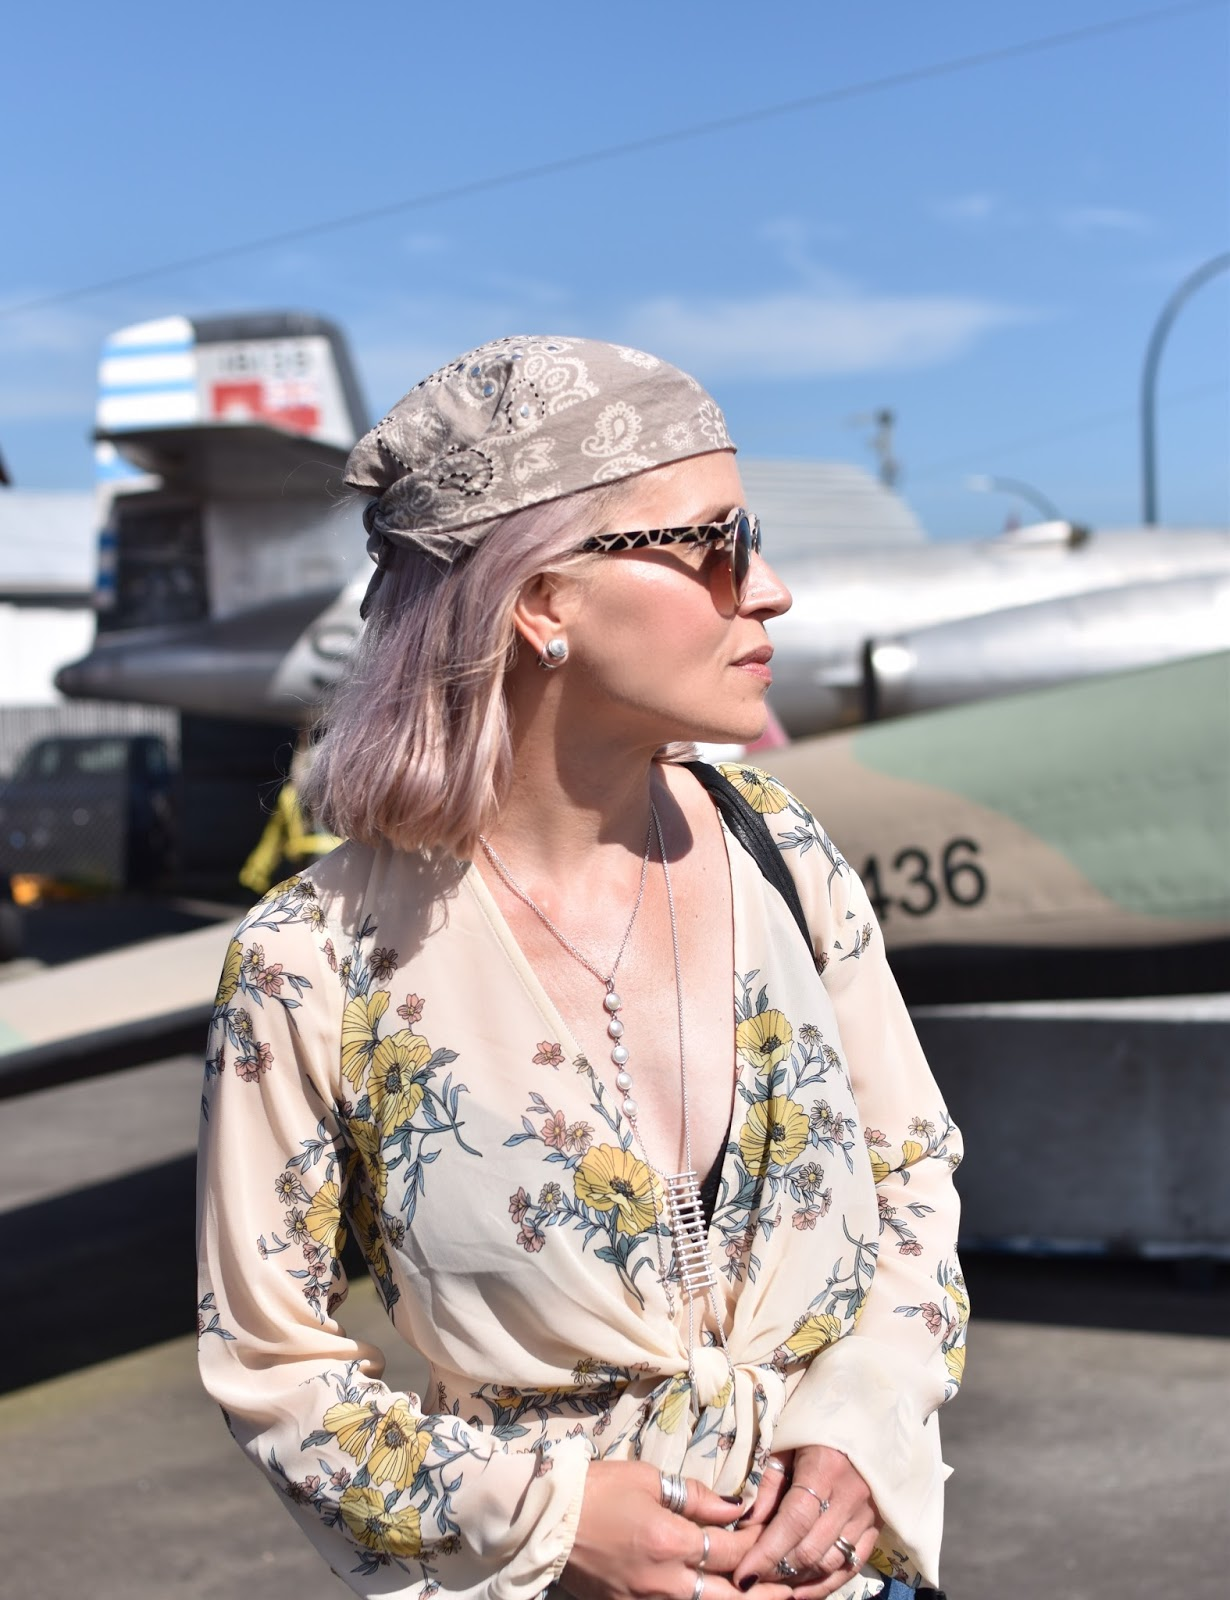 Monika Faulkner outfit inspiration - tie-front floral blouse, bandana head scarf, Nanette sunglasses